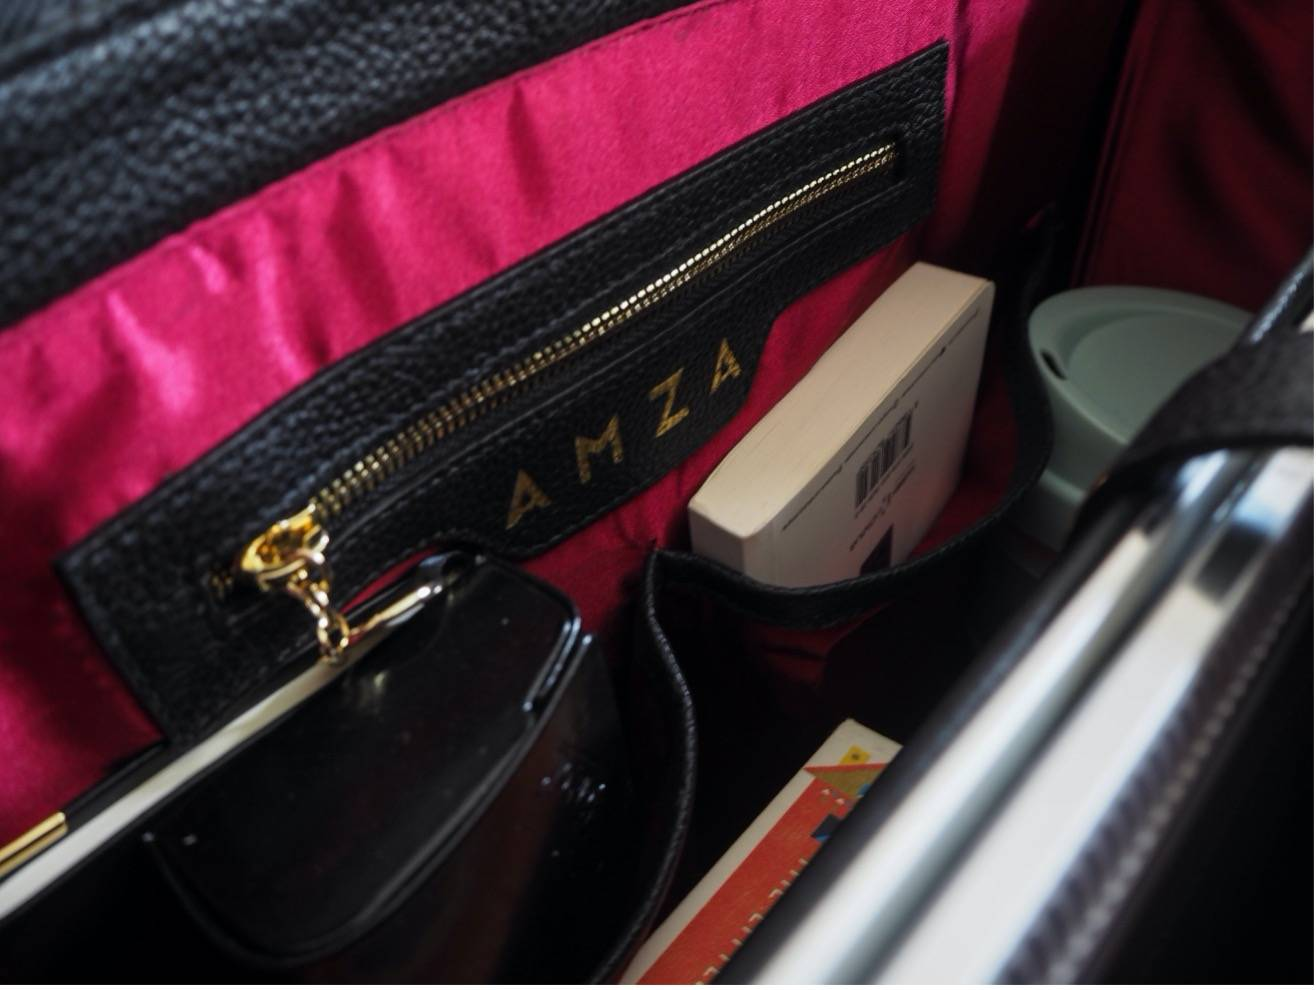 The interior of Evora - the Workbag with items in it